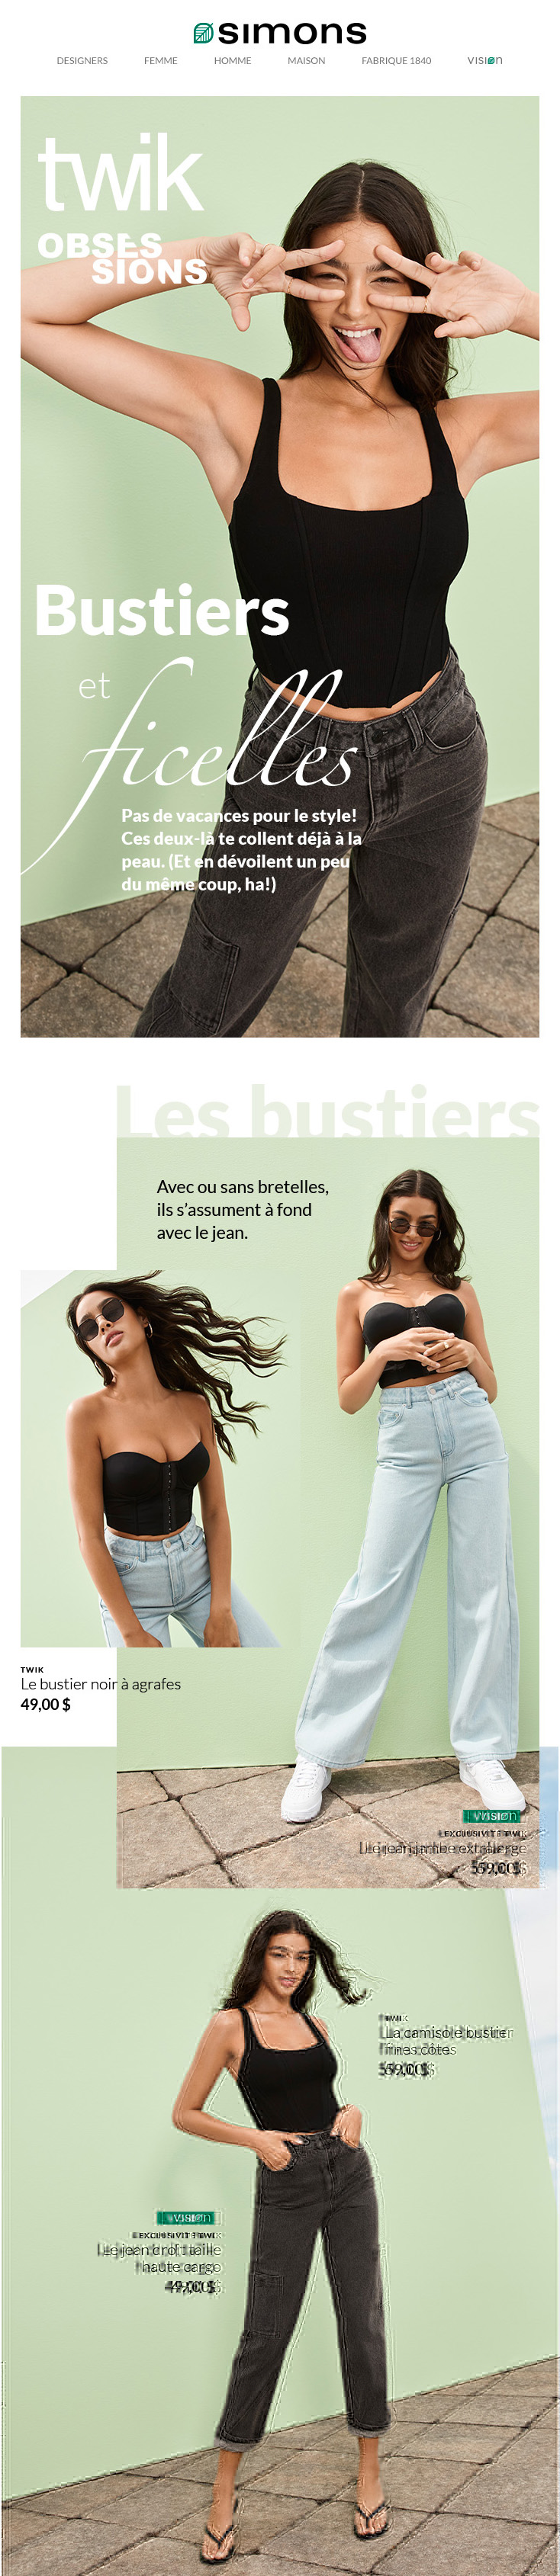 Obsessions : Bustiers Et Ficelles